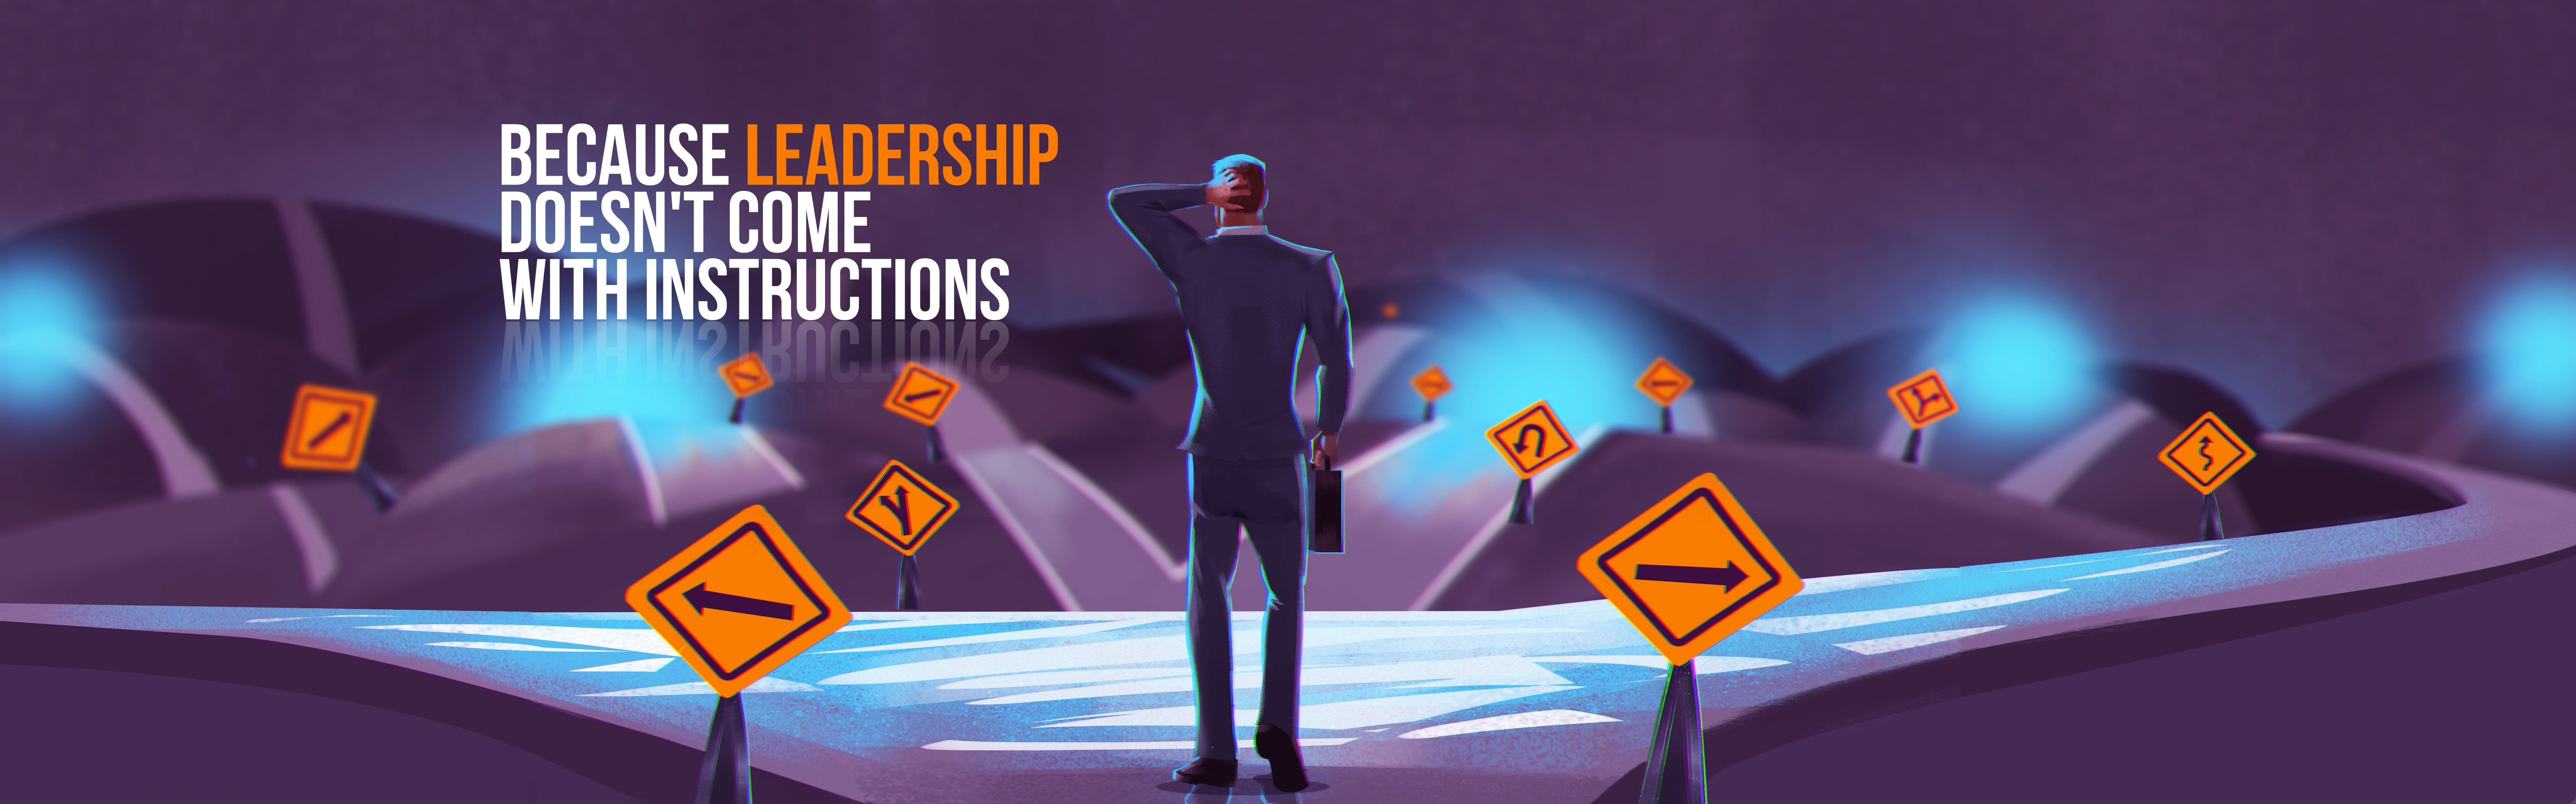 Design powerful and creative illustration for executive coaching firm's website